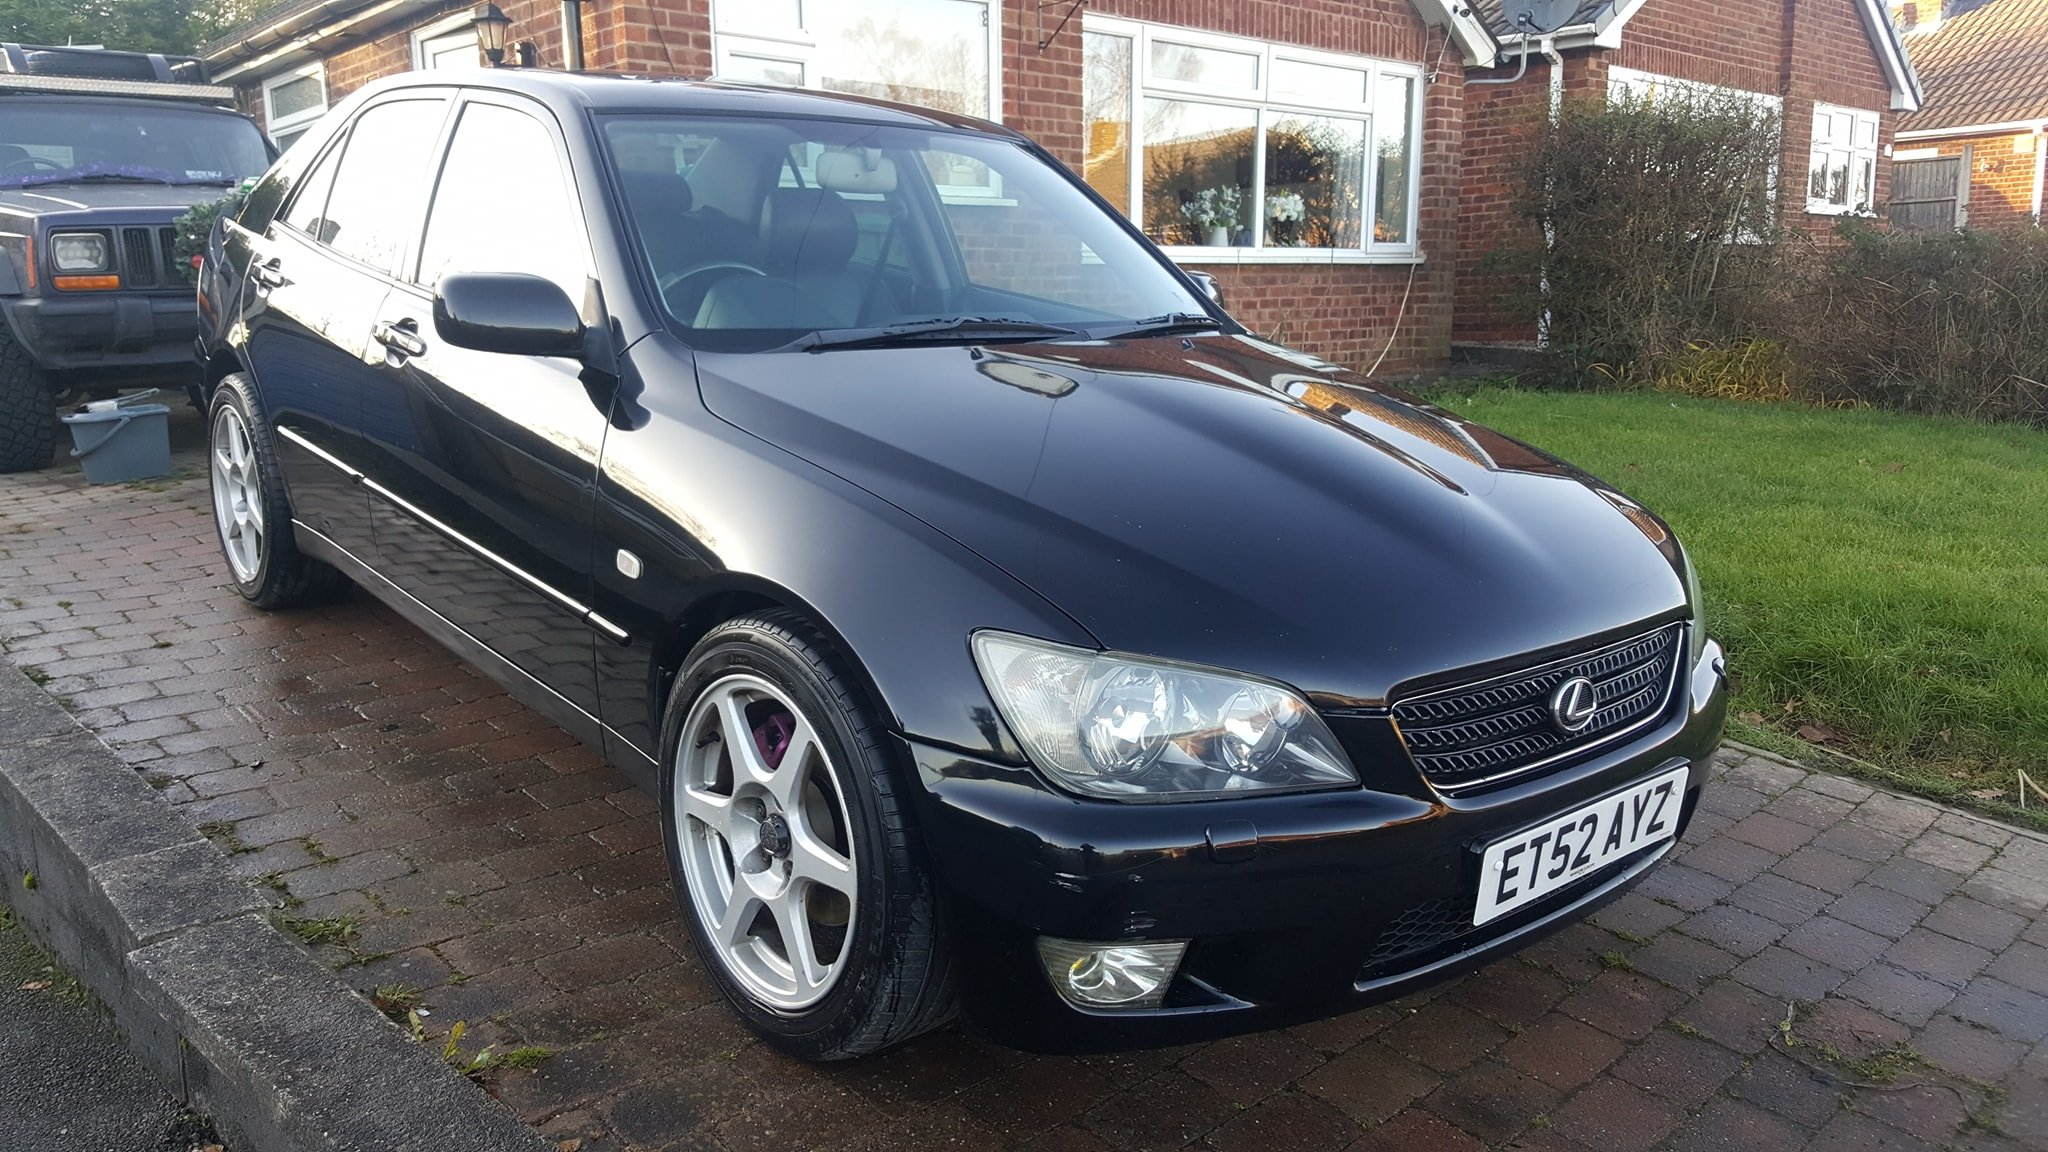 2002 lexus is300 100k miles in black 12 months MOT For Sale (picture 2 of 6)